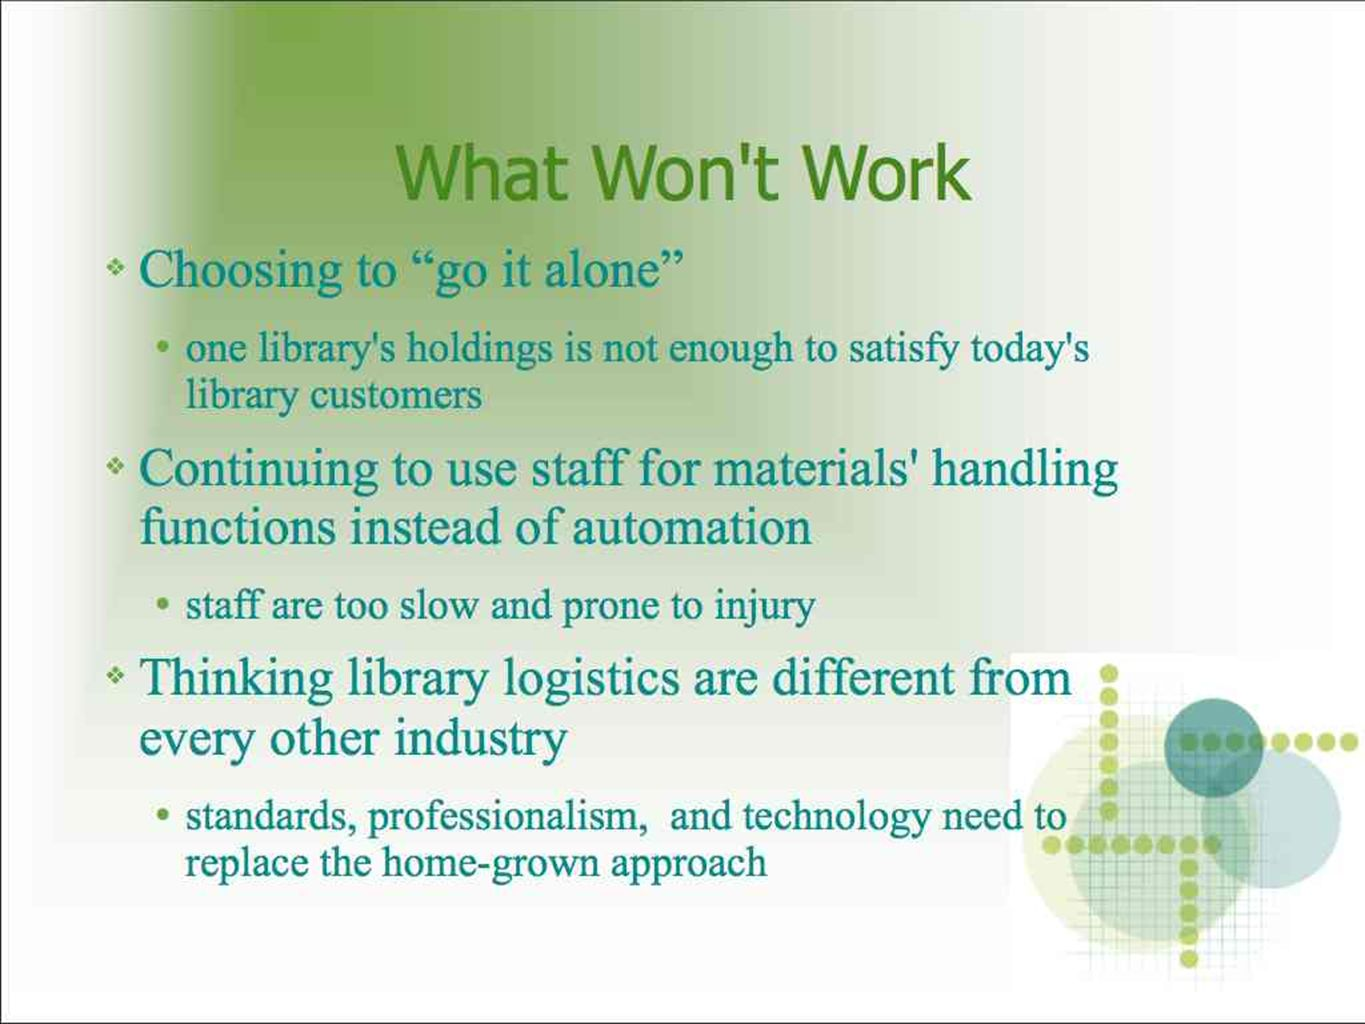 What Won t Work Choosing to go it alone one library s holdings is not enough to satisfy today s library customers Continuing to use staff for materials handling functions instead of automation staff are too slow and prone to injury Thinking library logistics are different from every other industry standards, professionalism, and technology need to replace the home-grown approach